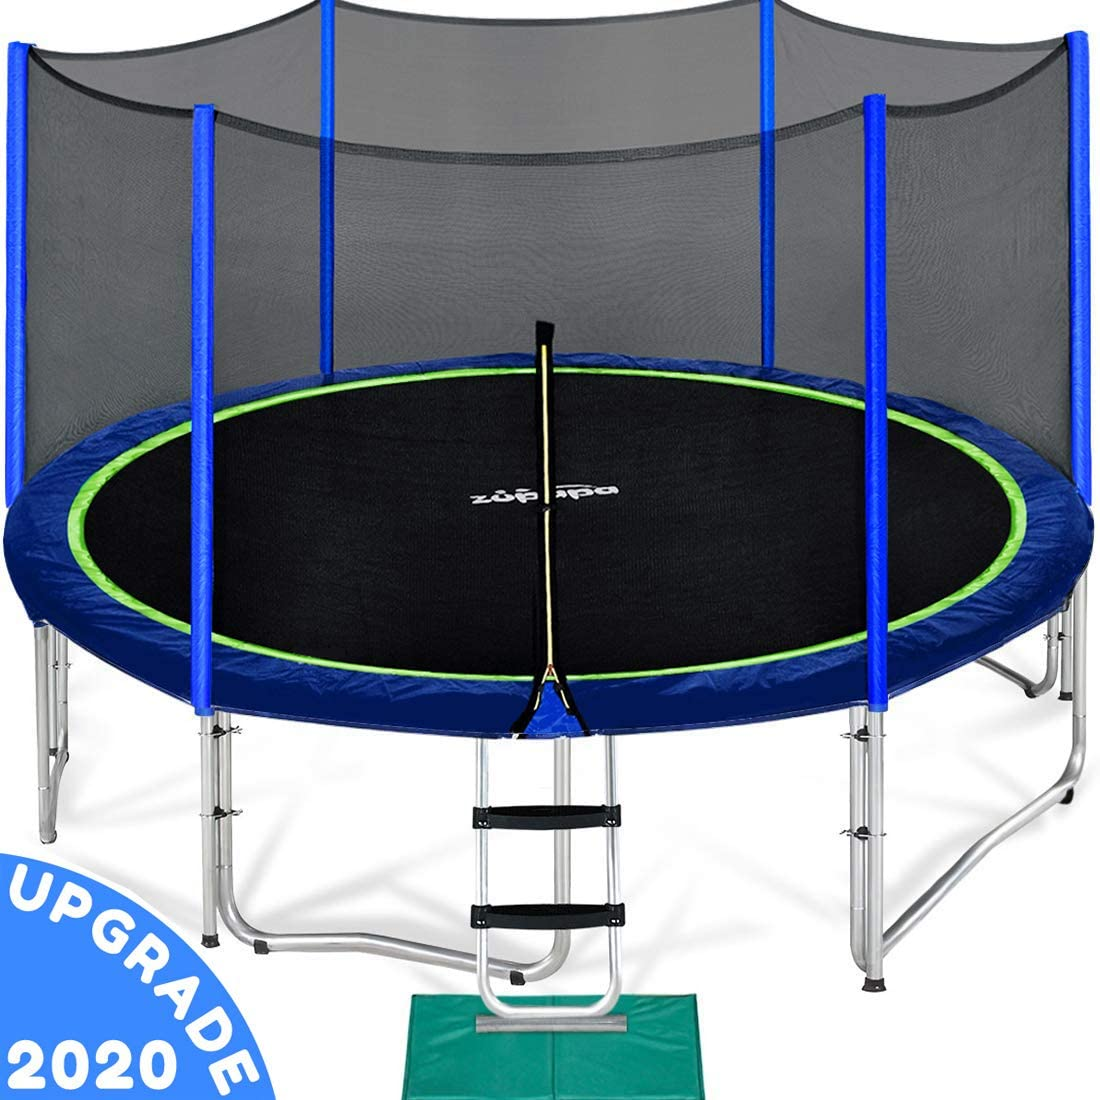 Zupapa 10 FT Trampoline for Kids with Safety Enclosure Net 330 lbs Weight Capacity Germany Outdoor Yard Trampolines with Jumping Mat Spring Pad Ladder Rain Cover